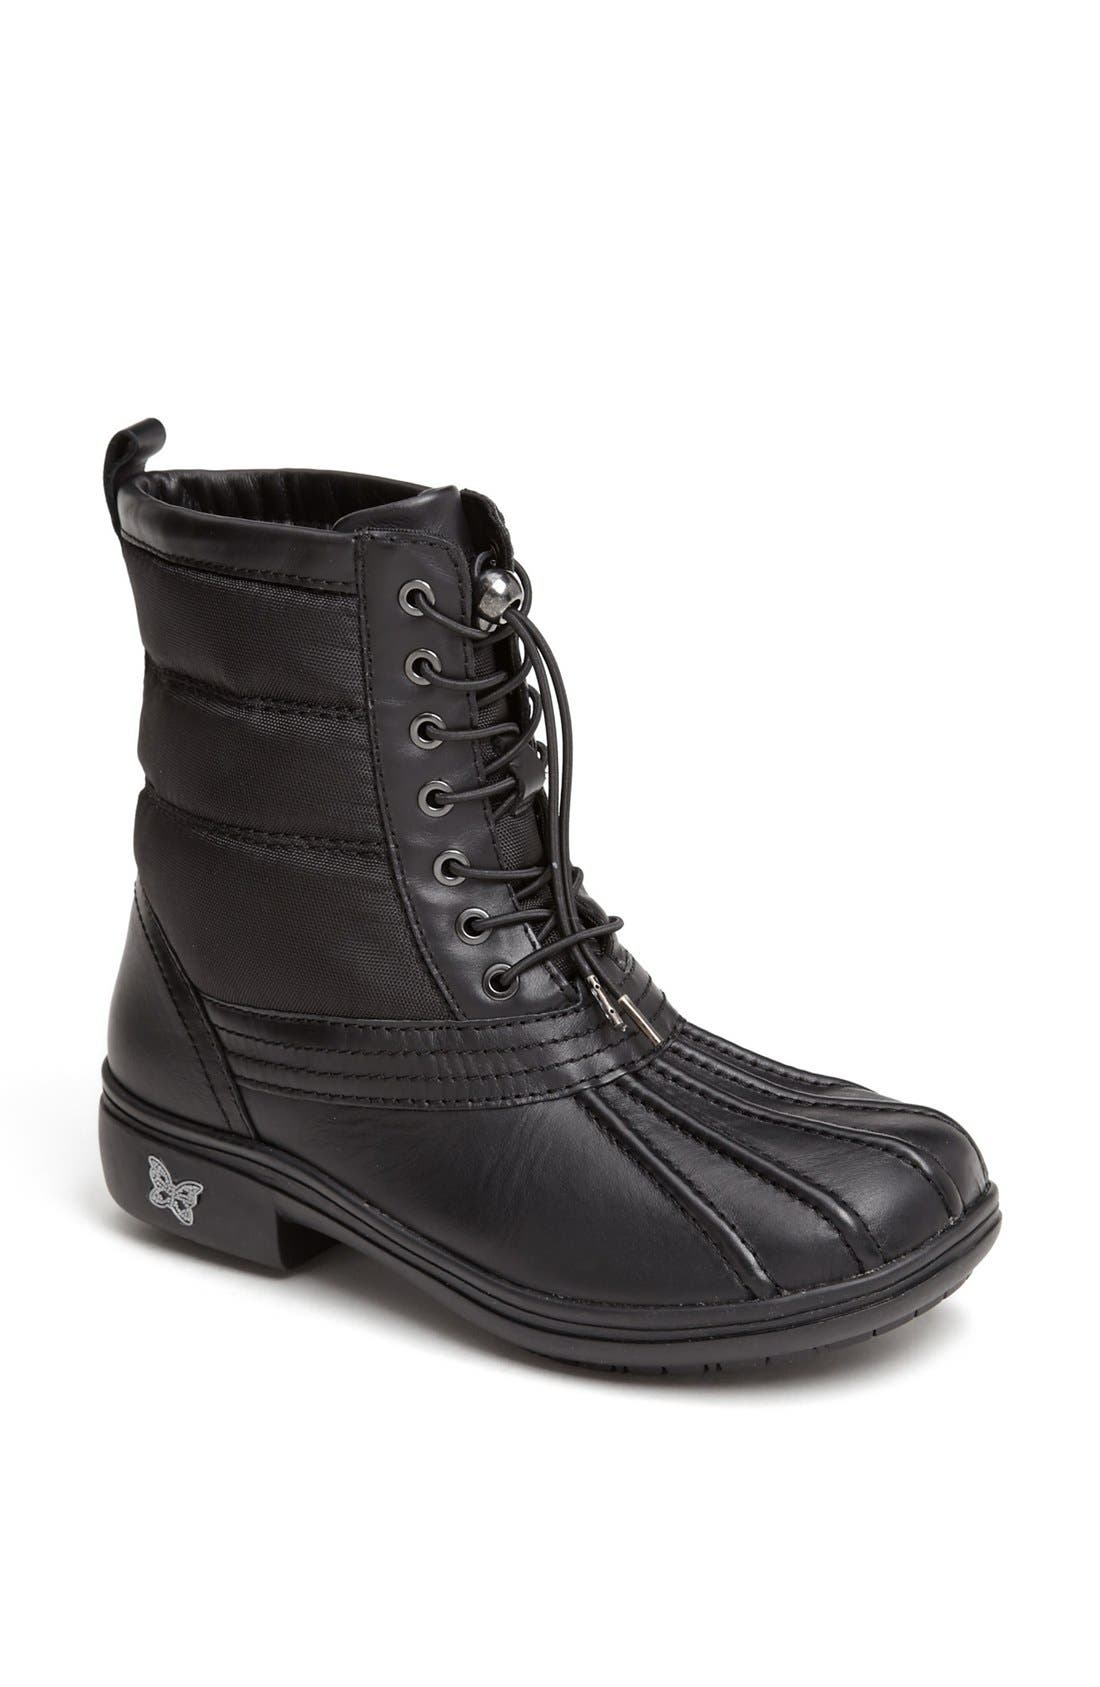 Alternate Image 1 Selected - Alegria 'Stormy' Cold Weather Boot